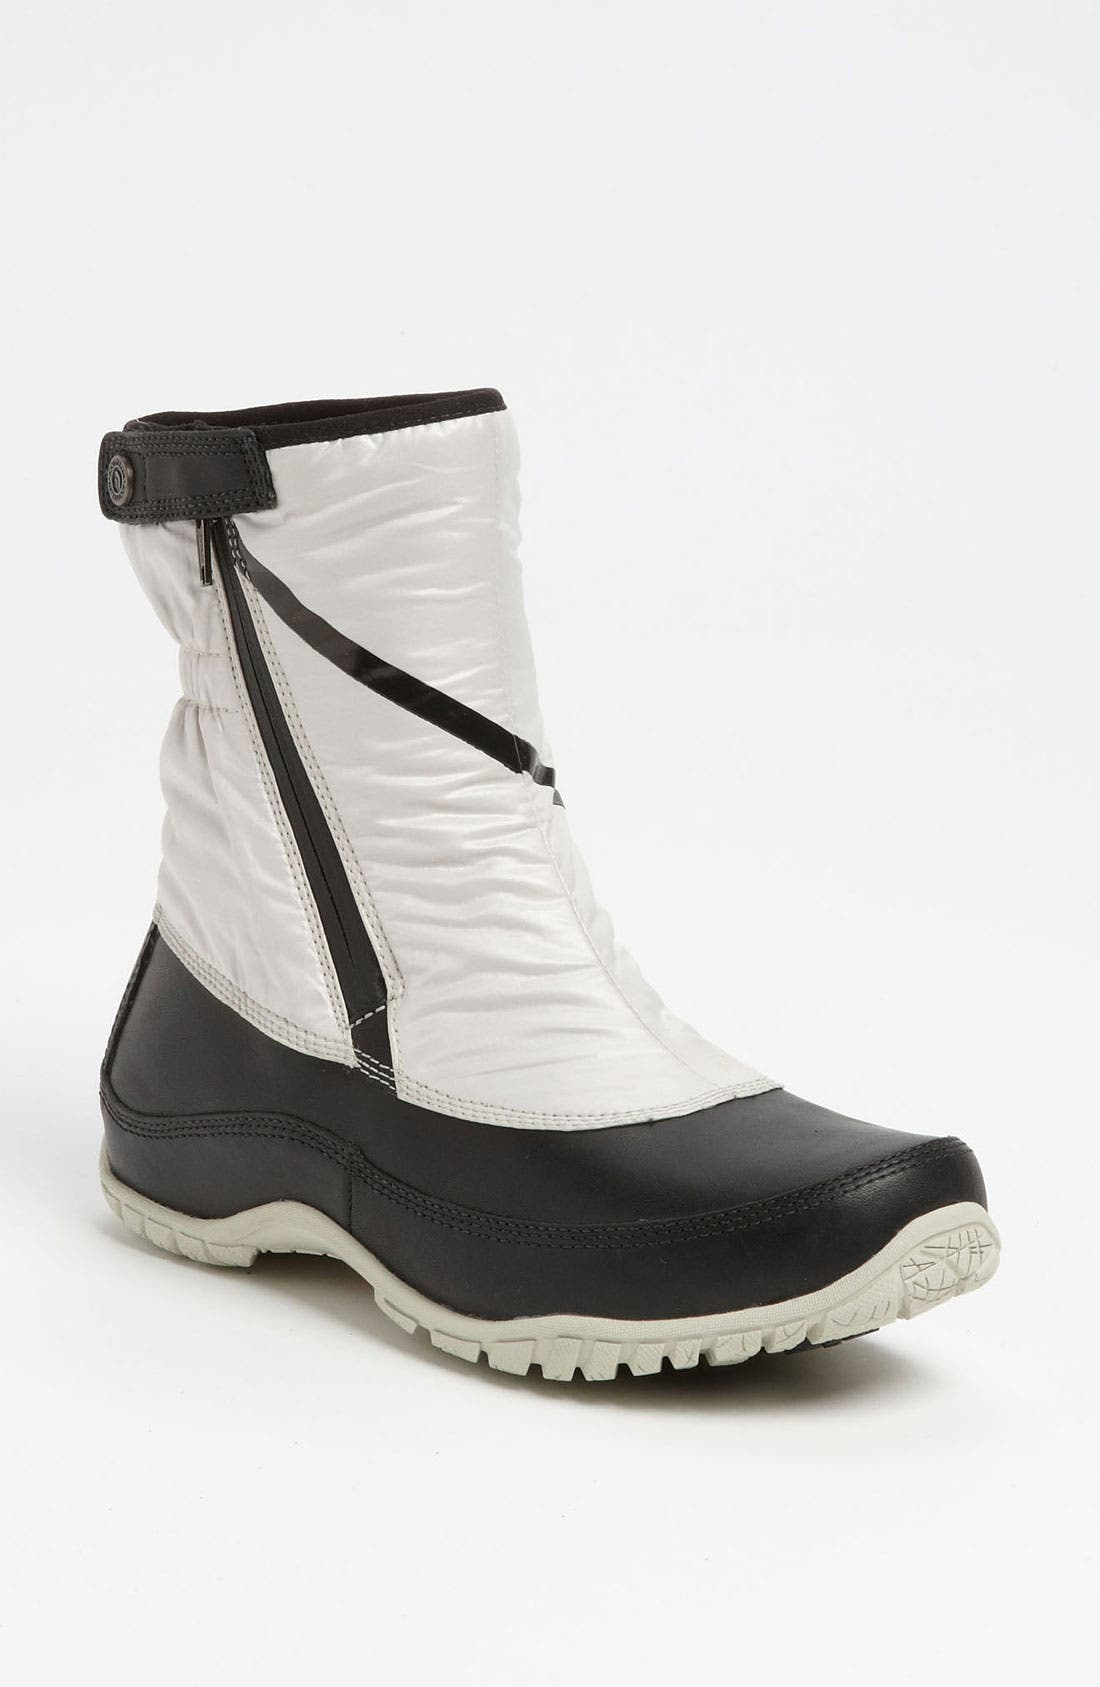 Alternate Image 1 Selected - The North Face 'Anna Purna' Mid Zip Boot